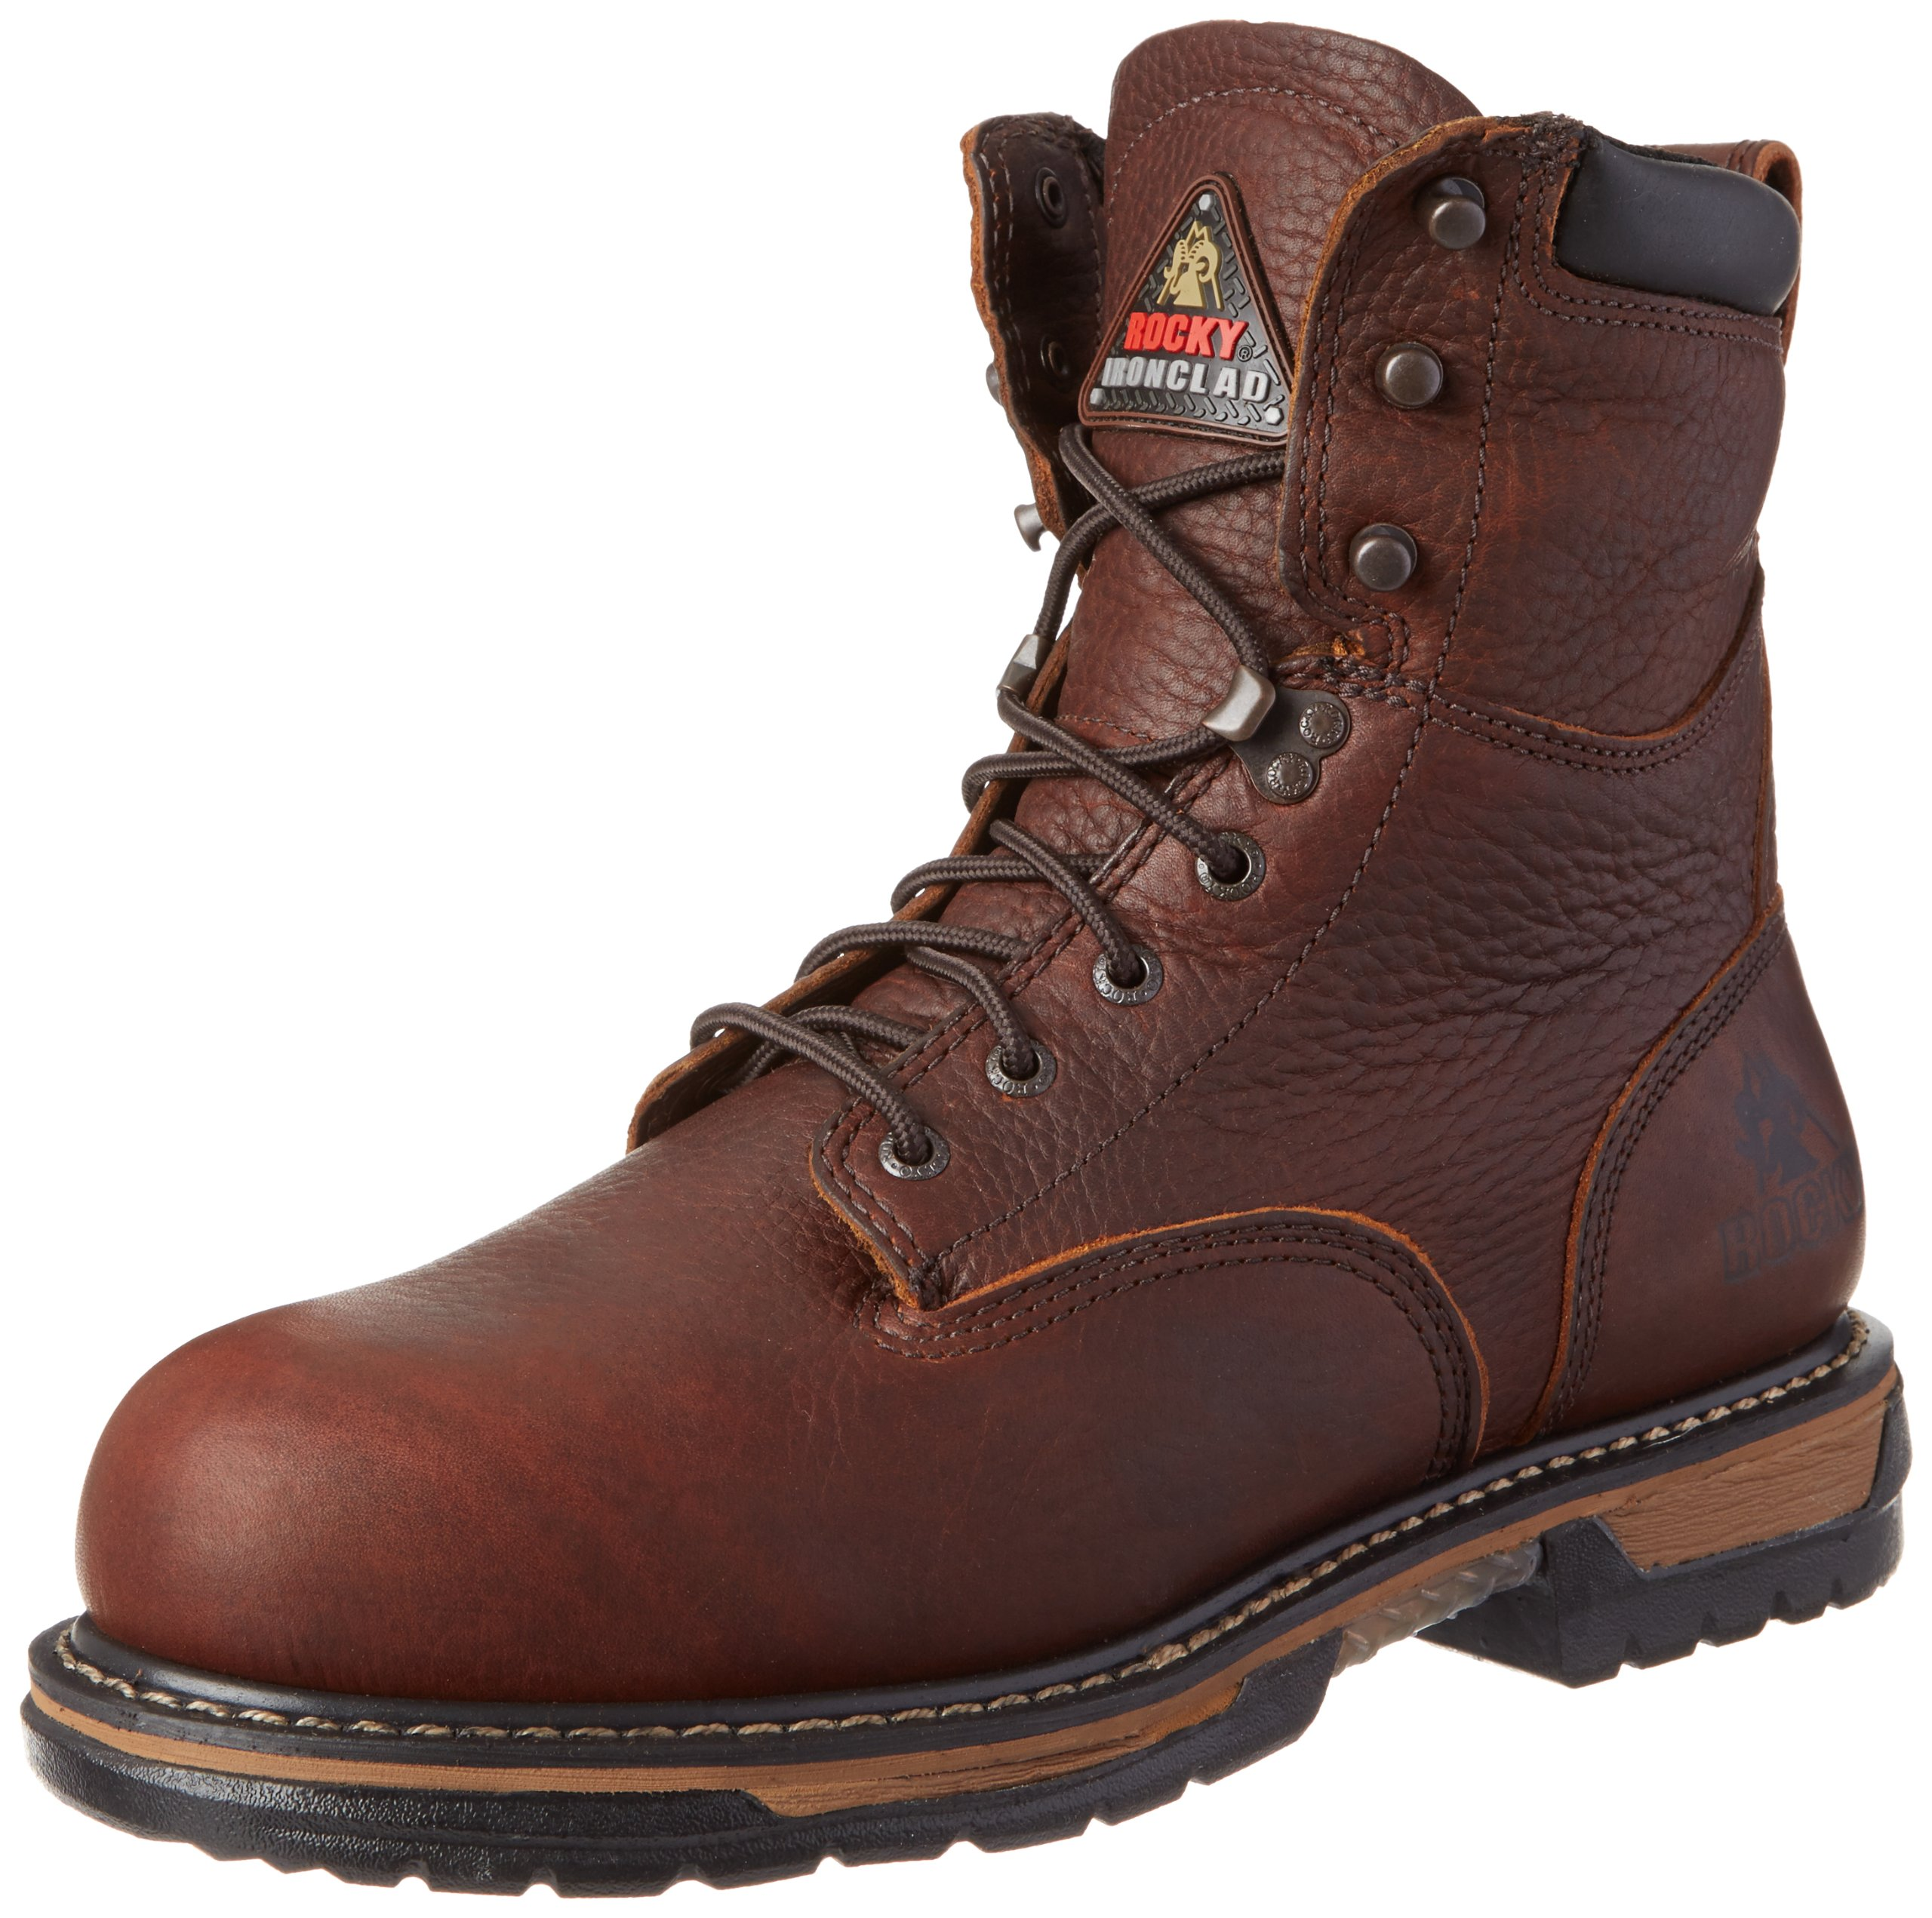 Rocky Men's Iron Clad Eight Inch Steel Toe Work Boot,Brown,10.5 M US